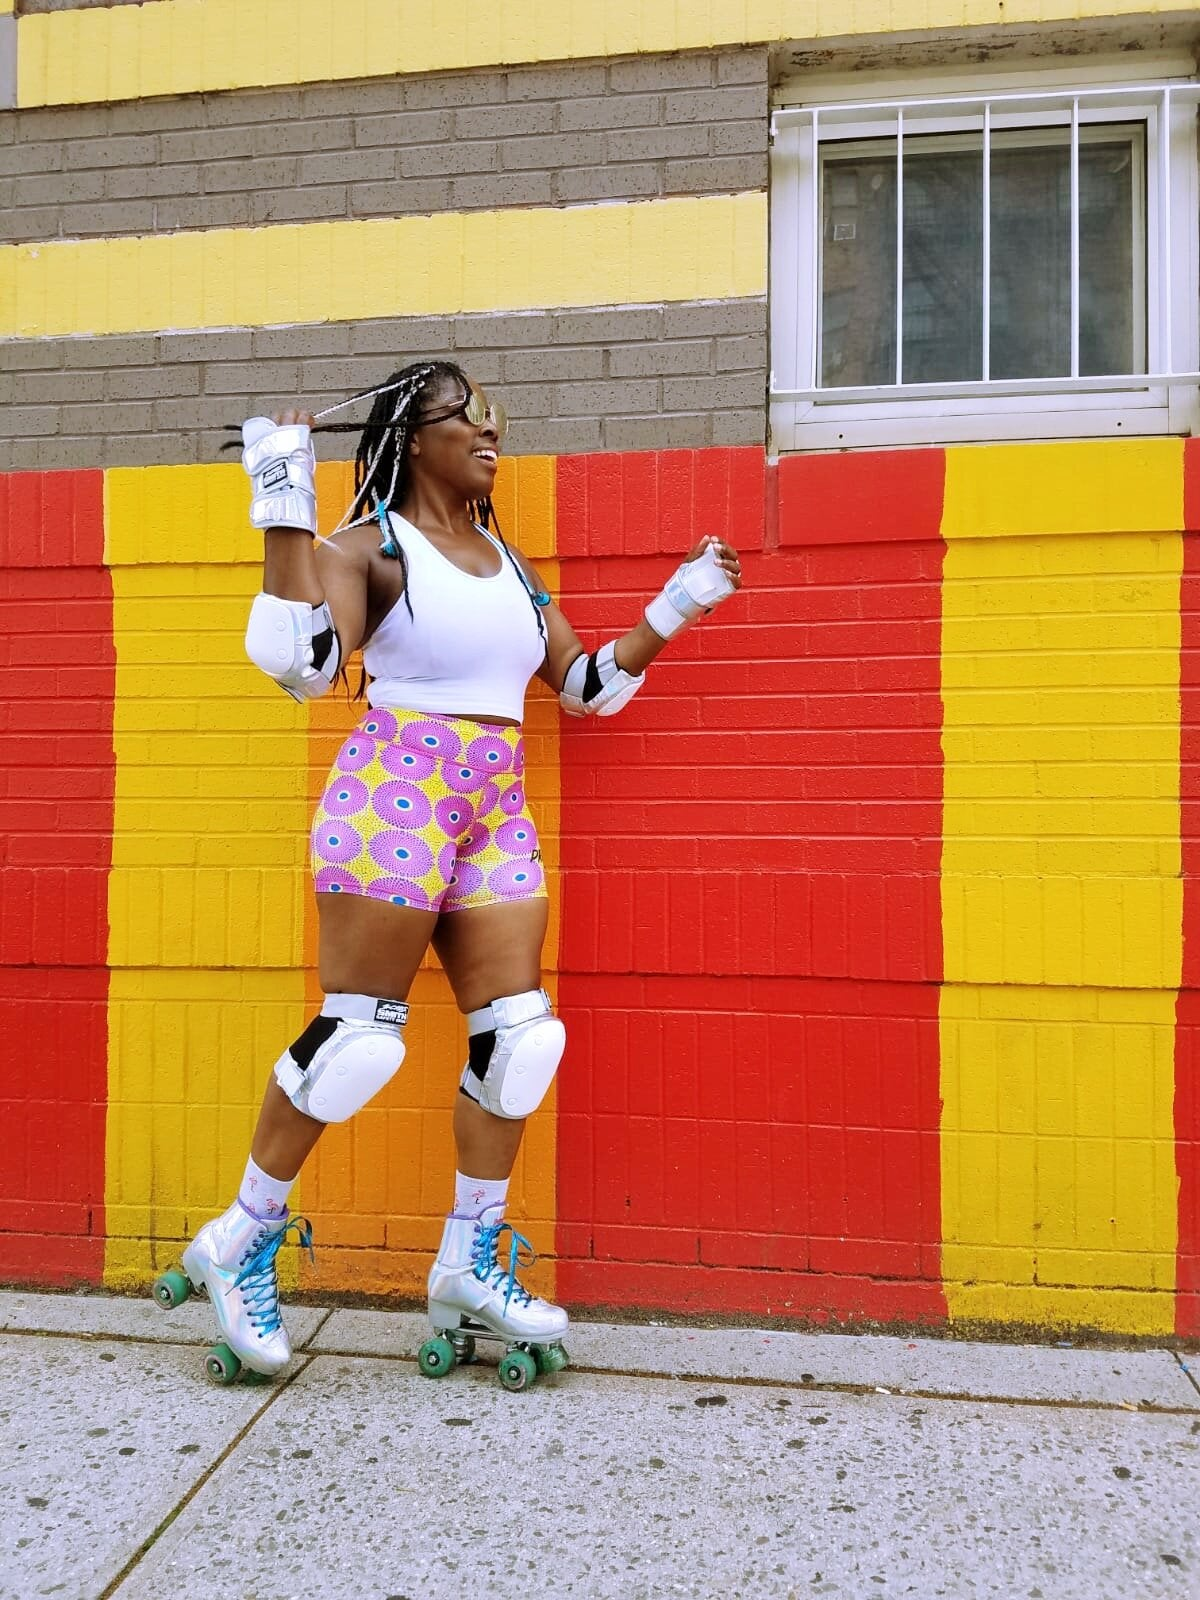 model wears yellow and pink-print bike shorts while wearing roller skates